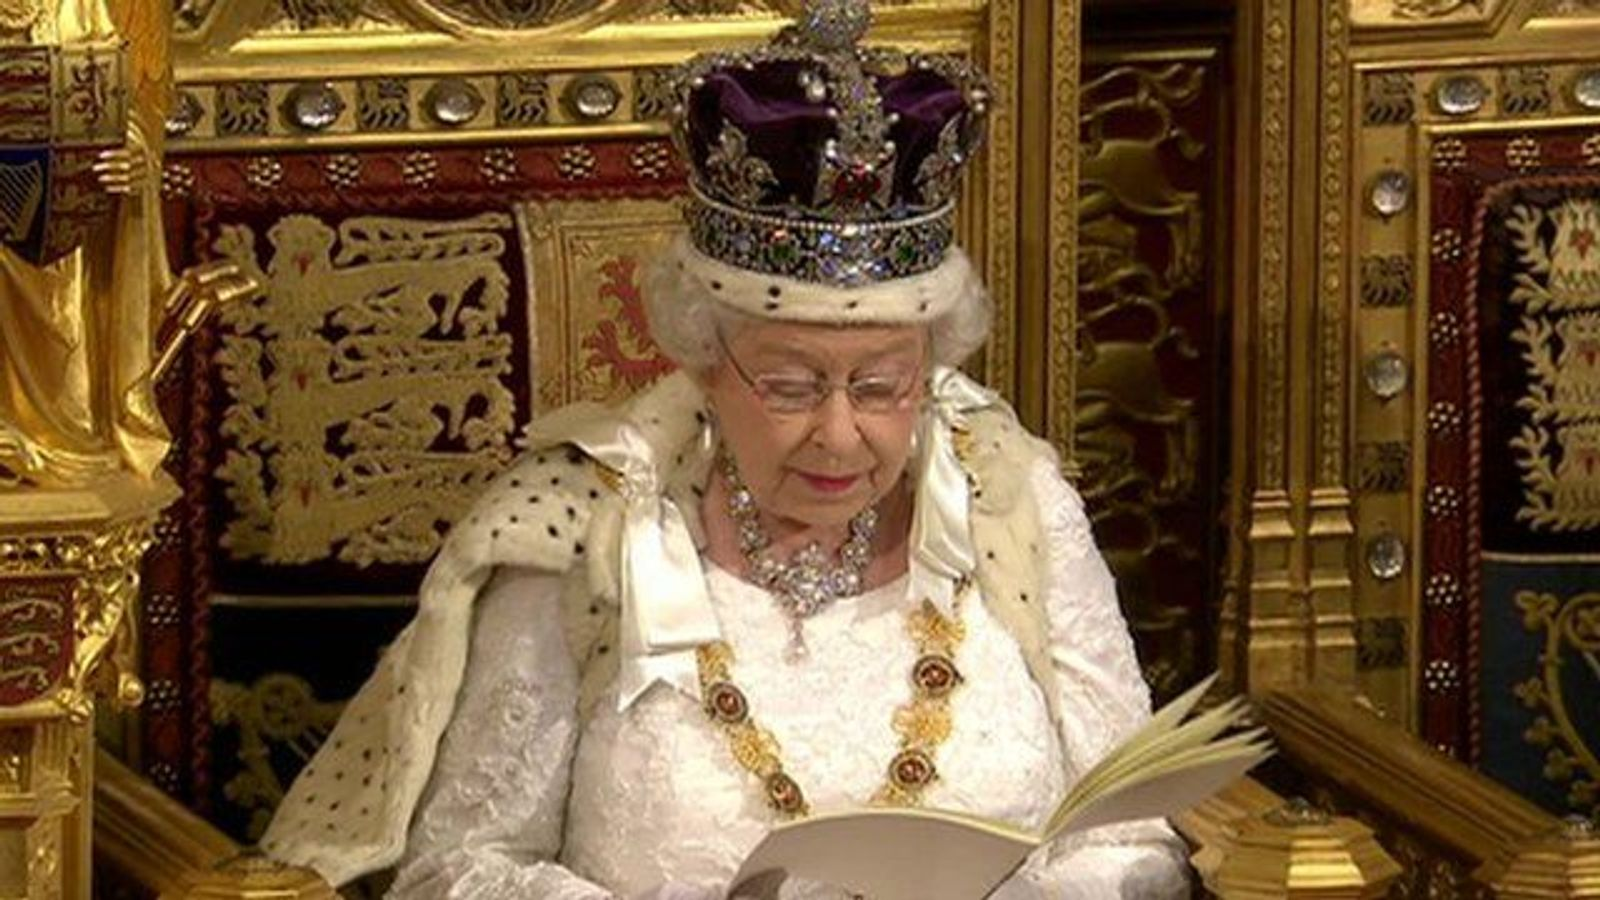 The Queen's Speech being delivered